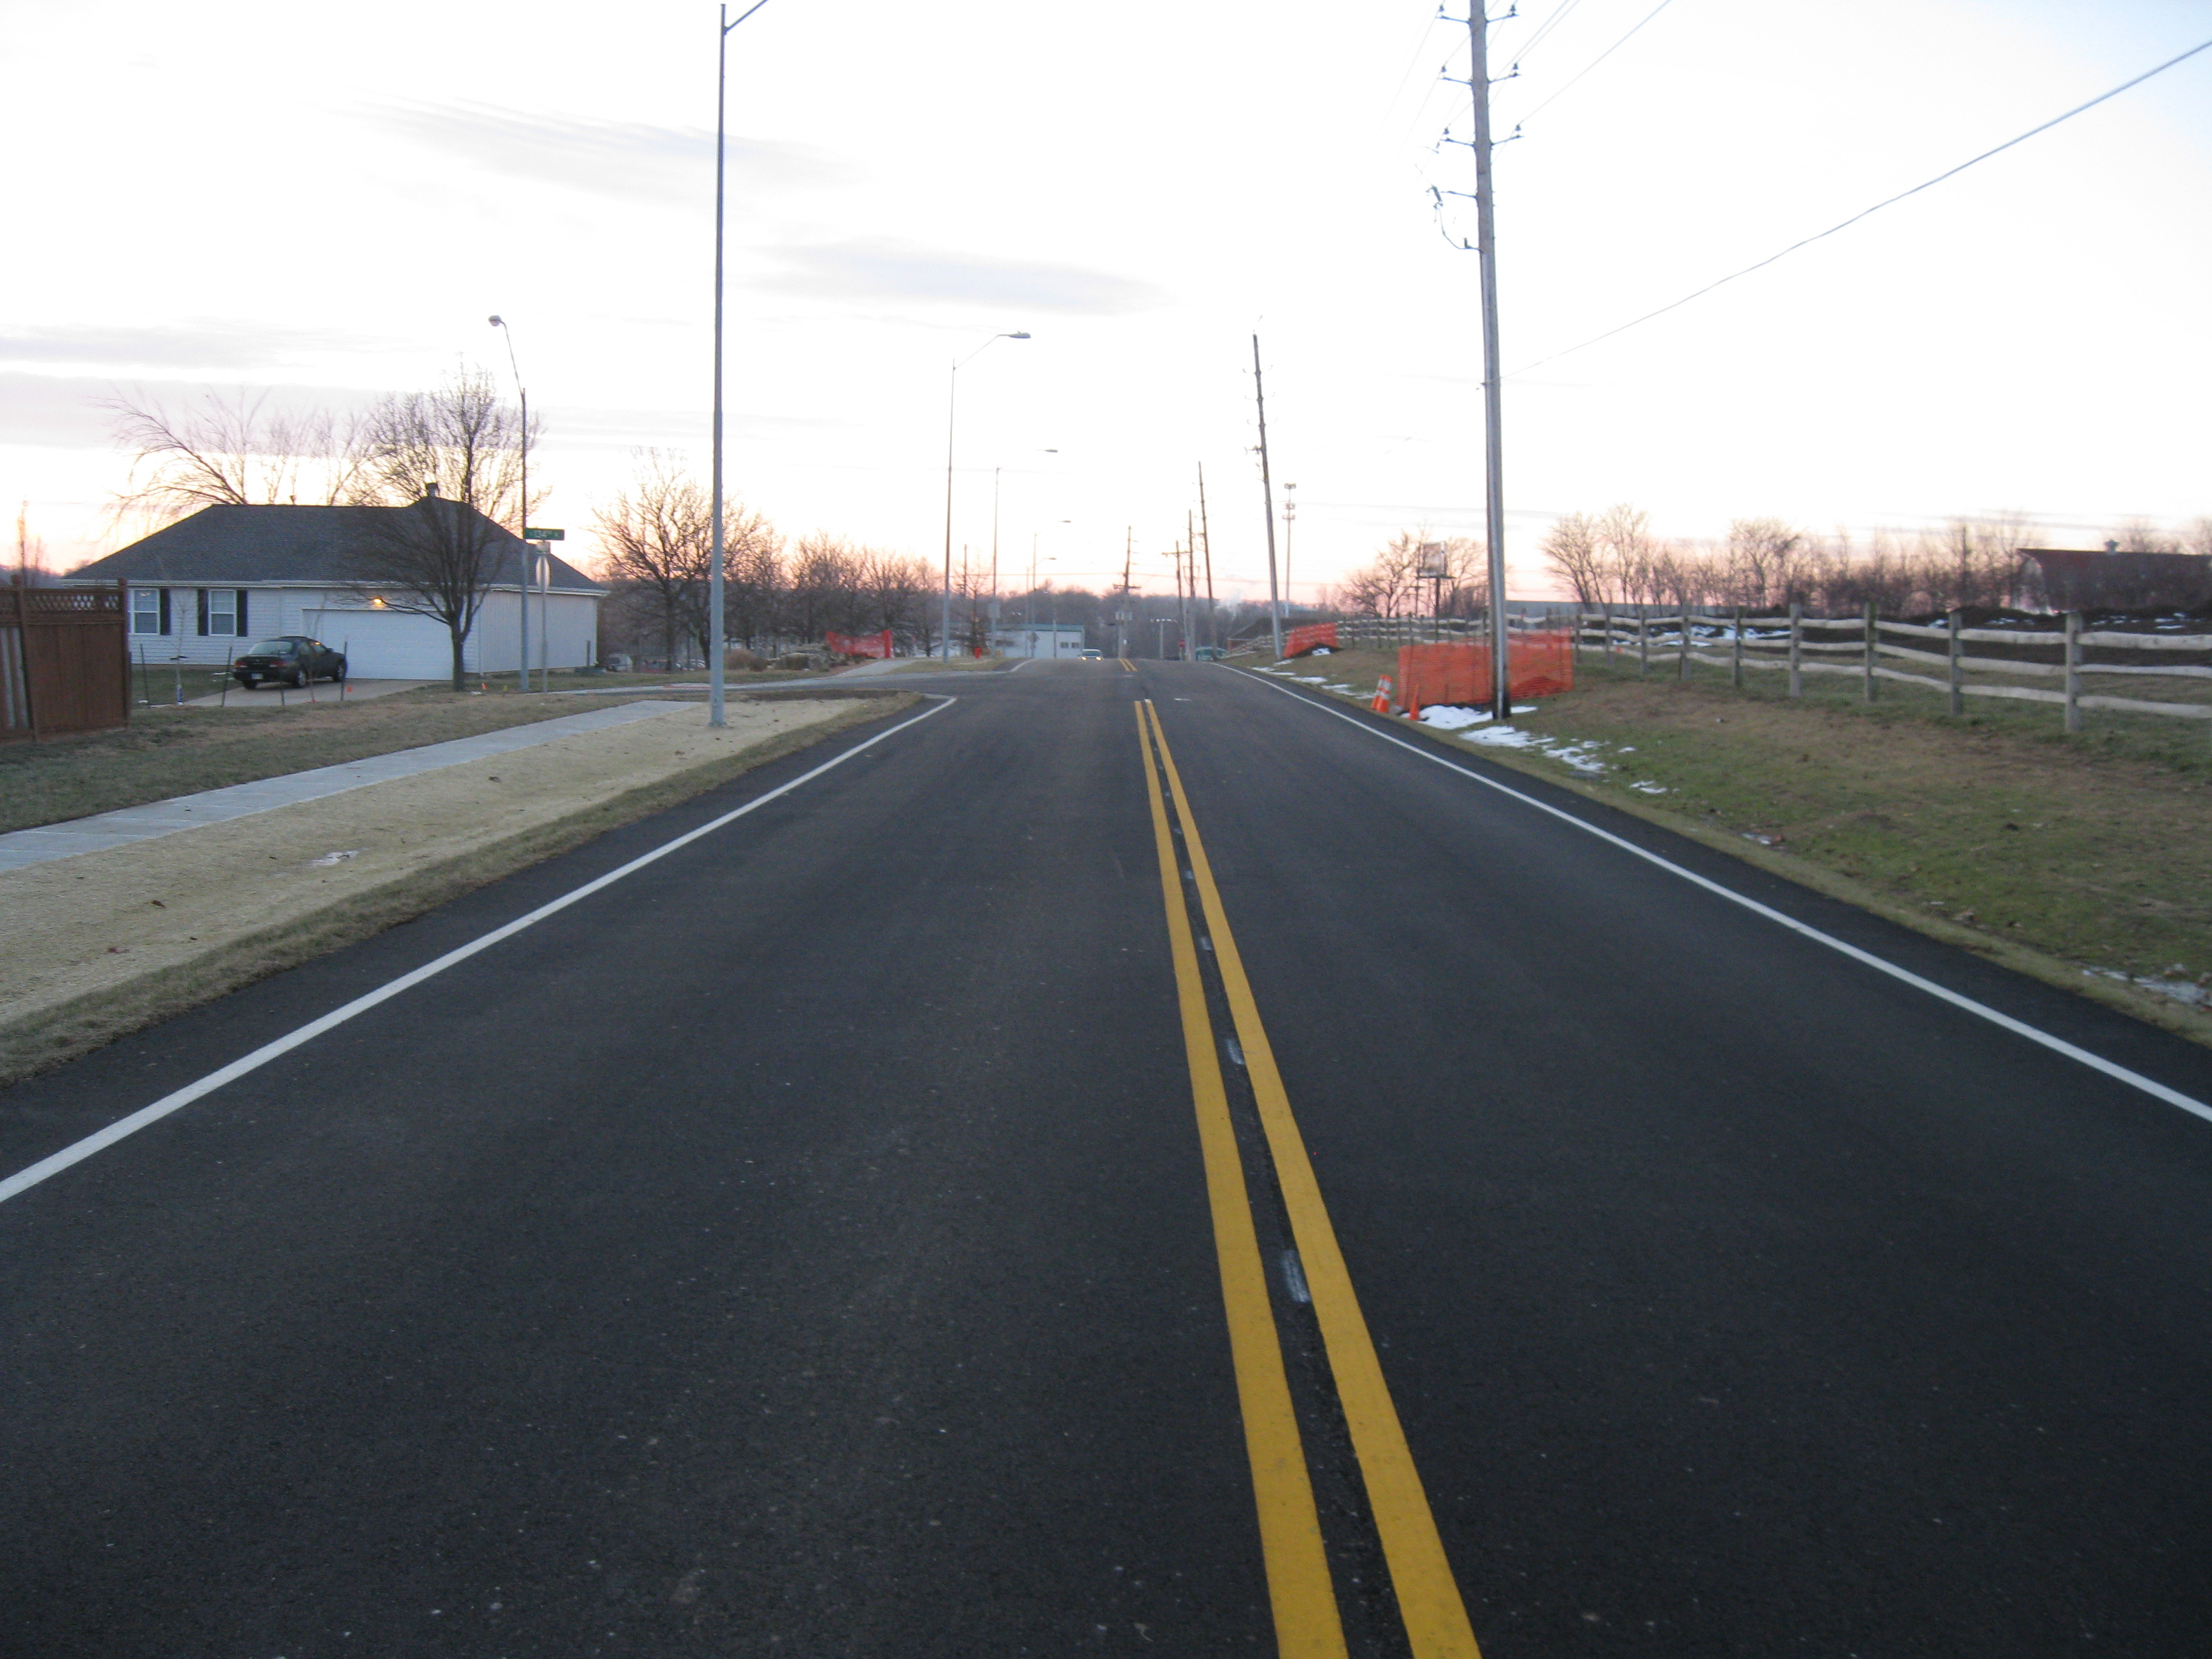 Wornall Road, Blue Ridge to 135th St